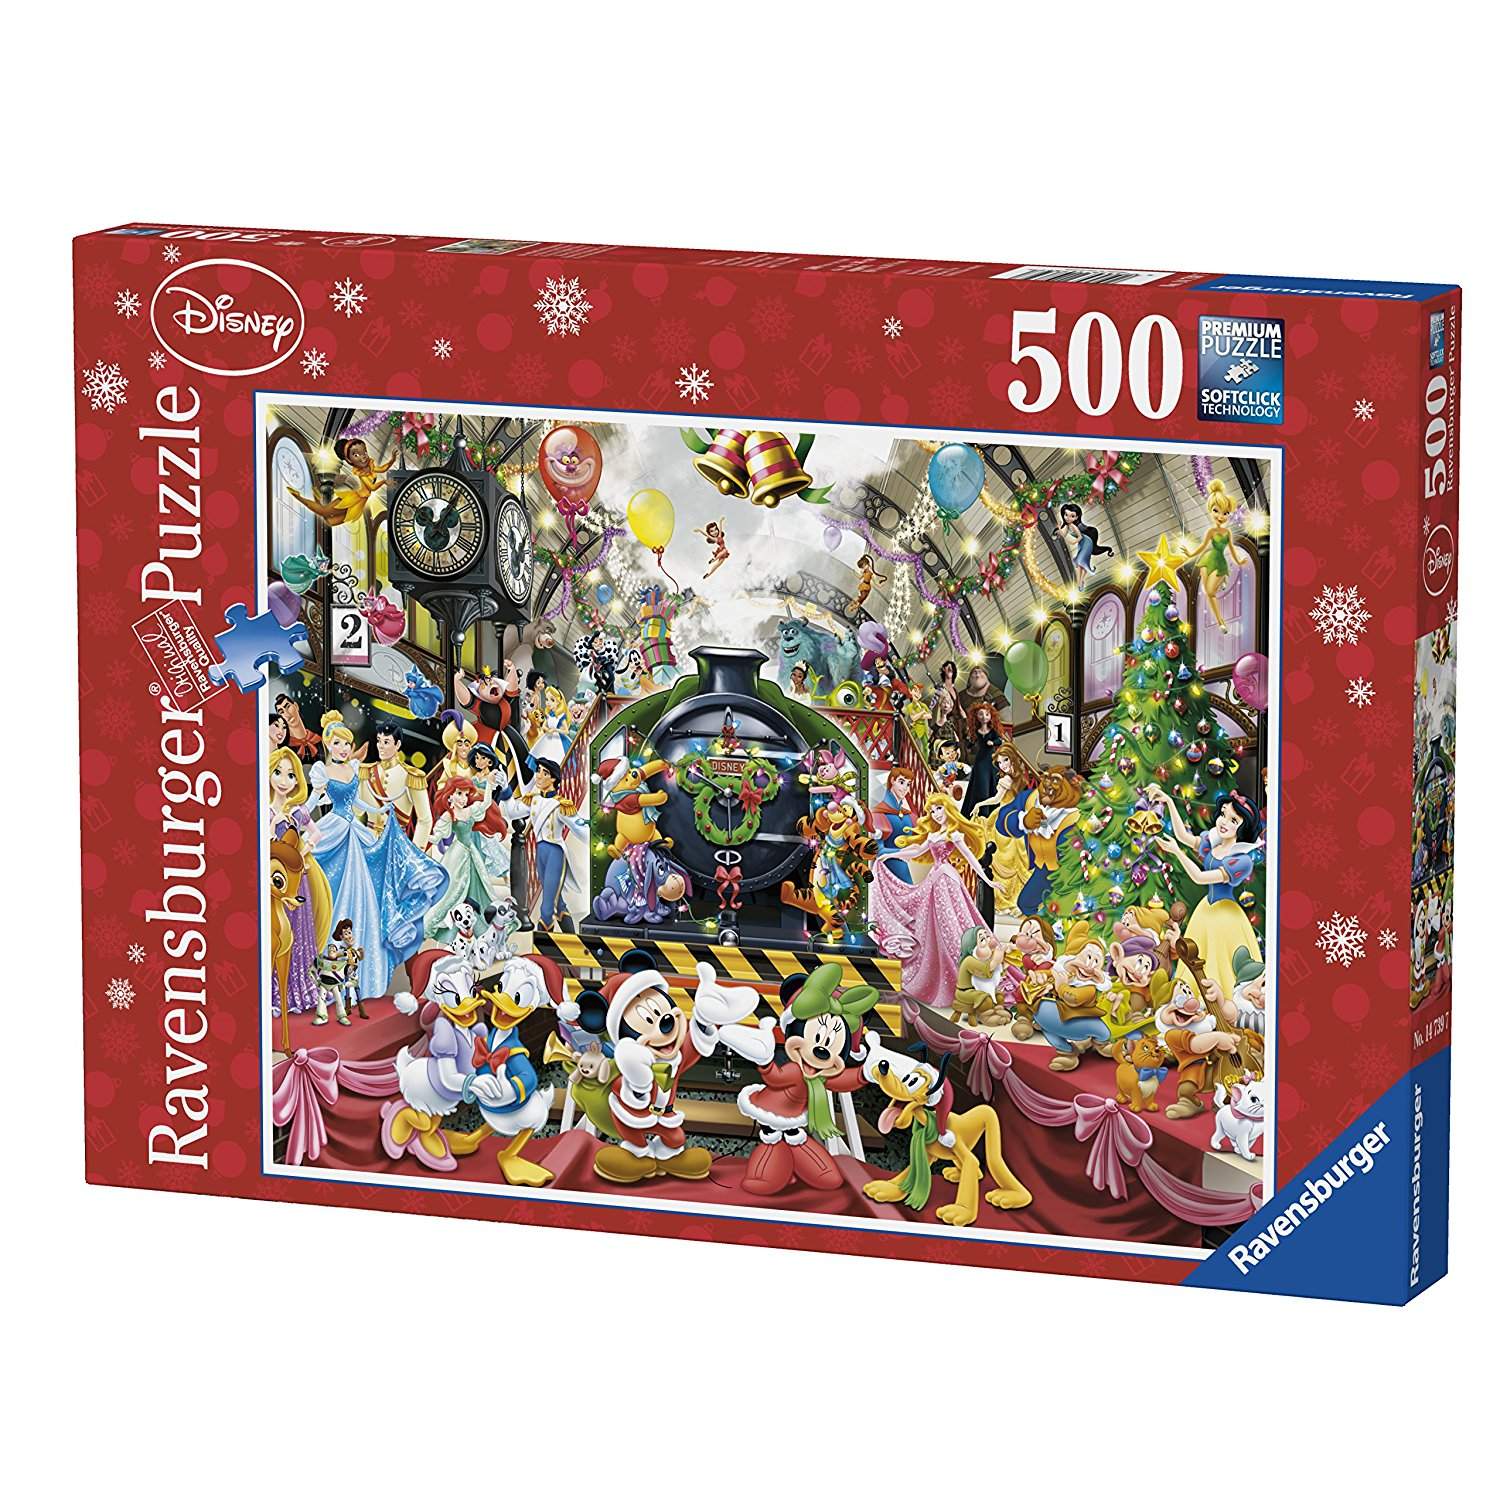 disney weihnachts zug 500 teile ravensburger puzzle. Black Bedroom Furniture Sets. Home Design Ideas